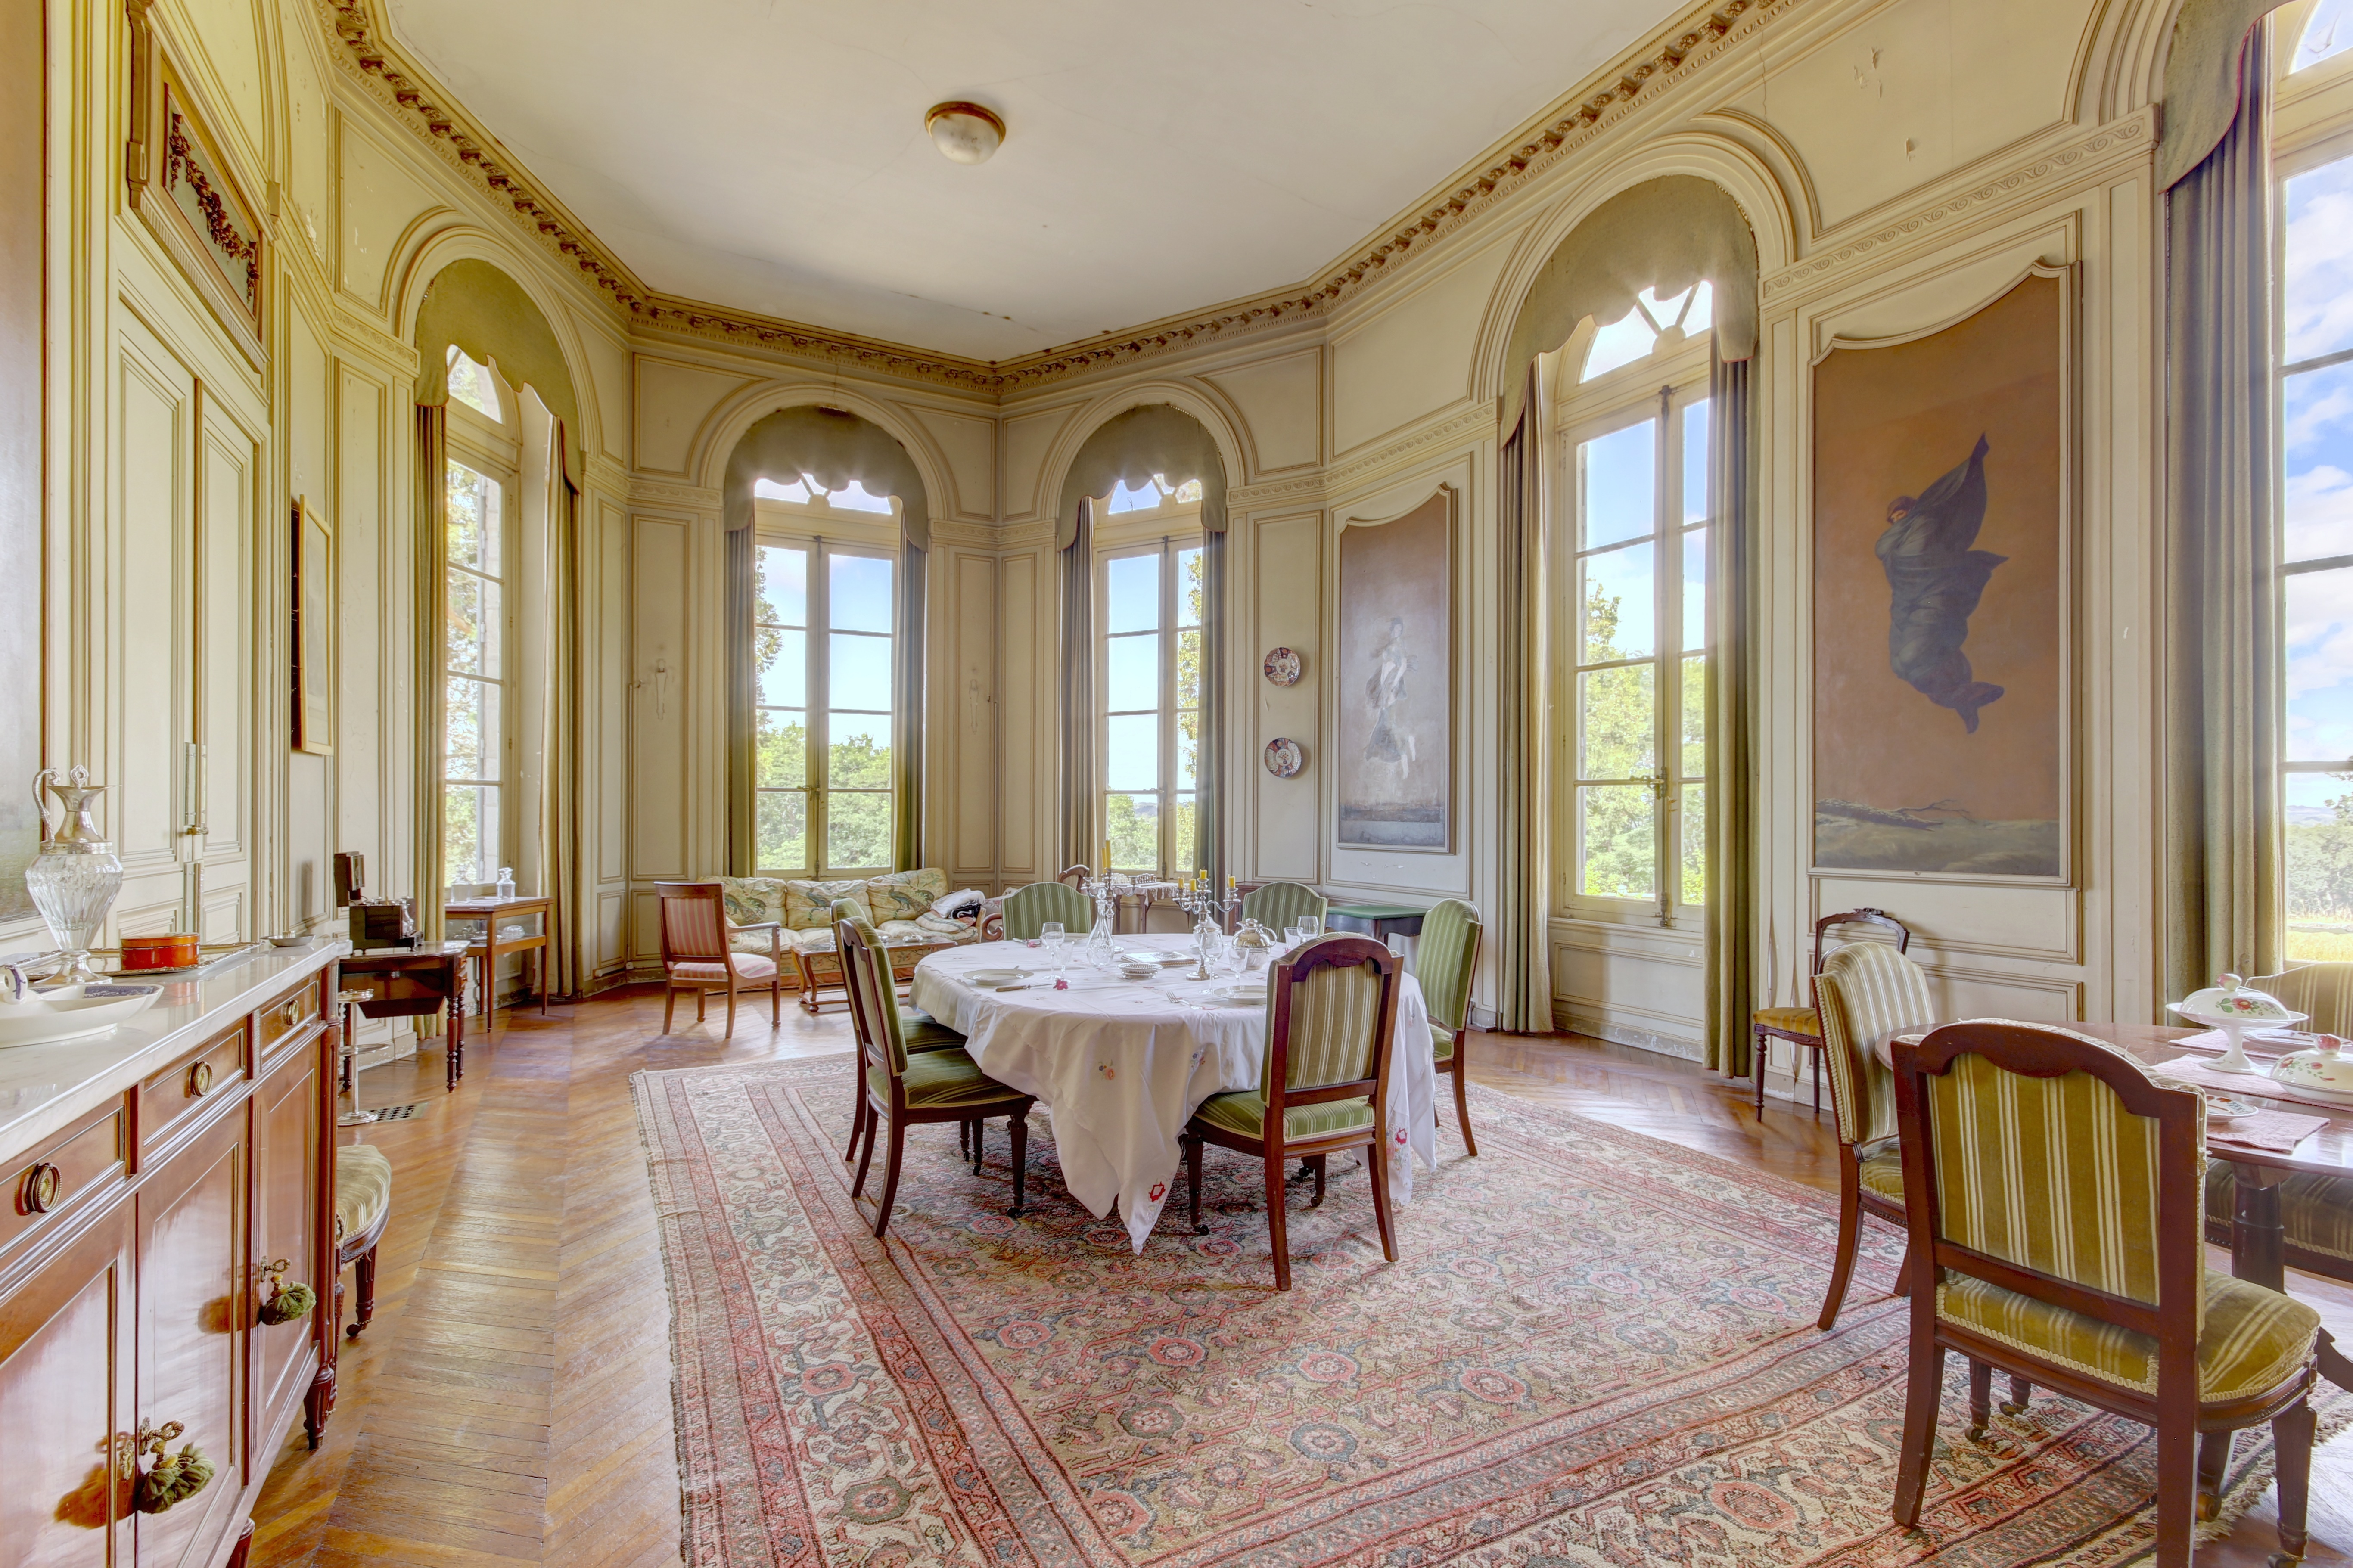 french chateau formal dining room with baroque influence